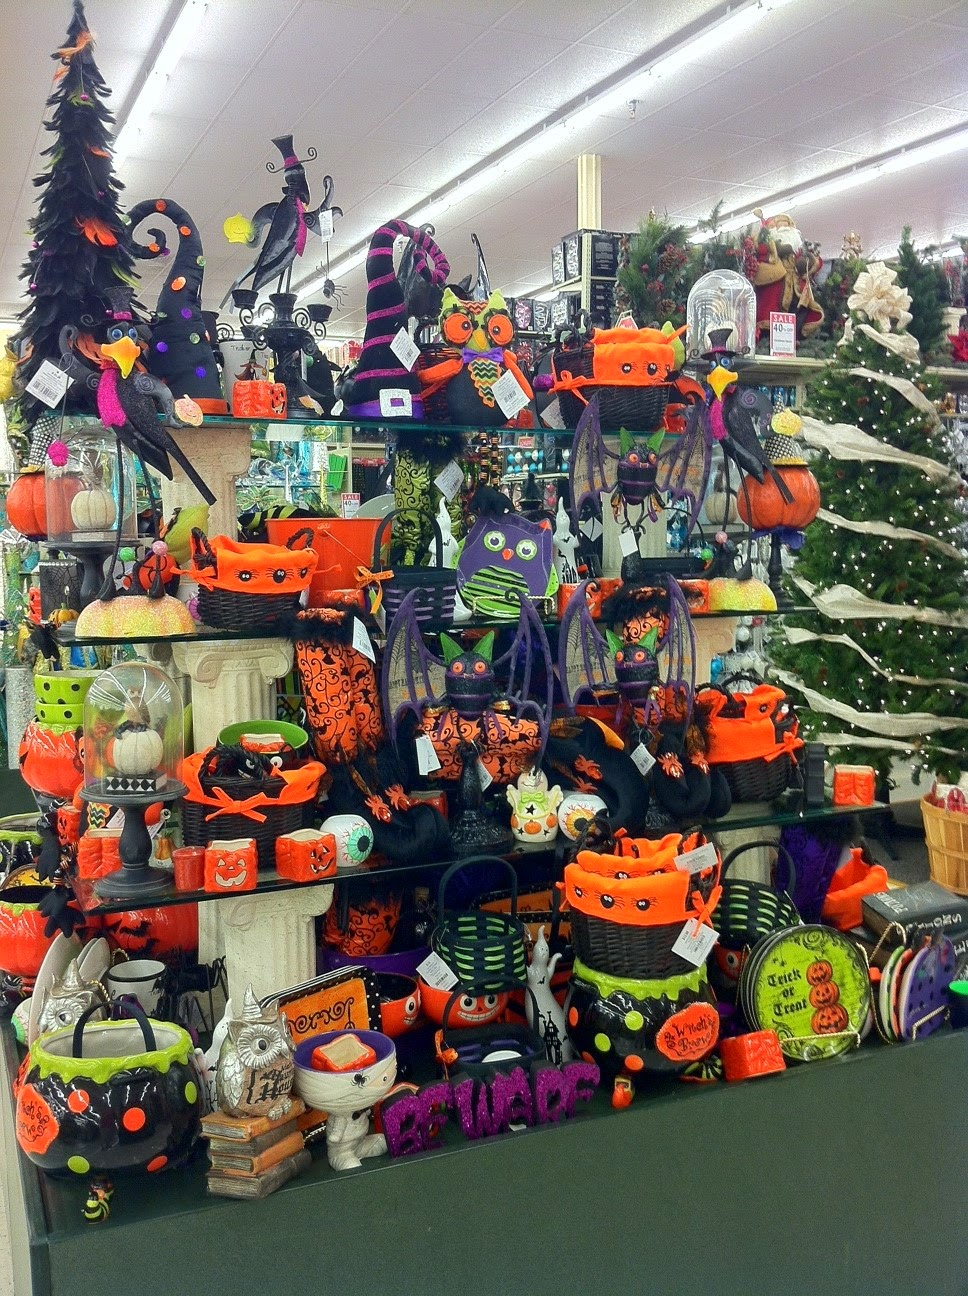 walgreens halloween decorations decoration halloween hobby lobby lobby at halloween